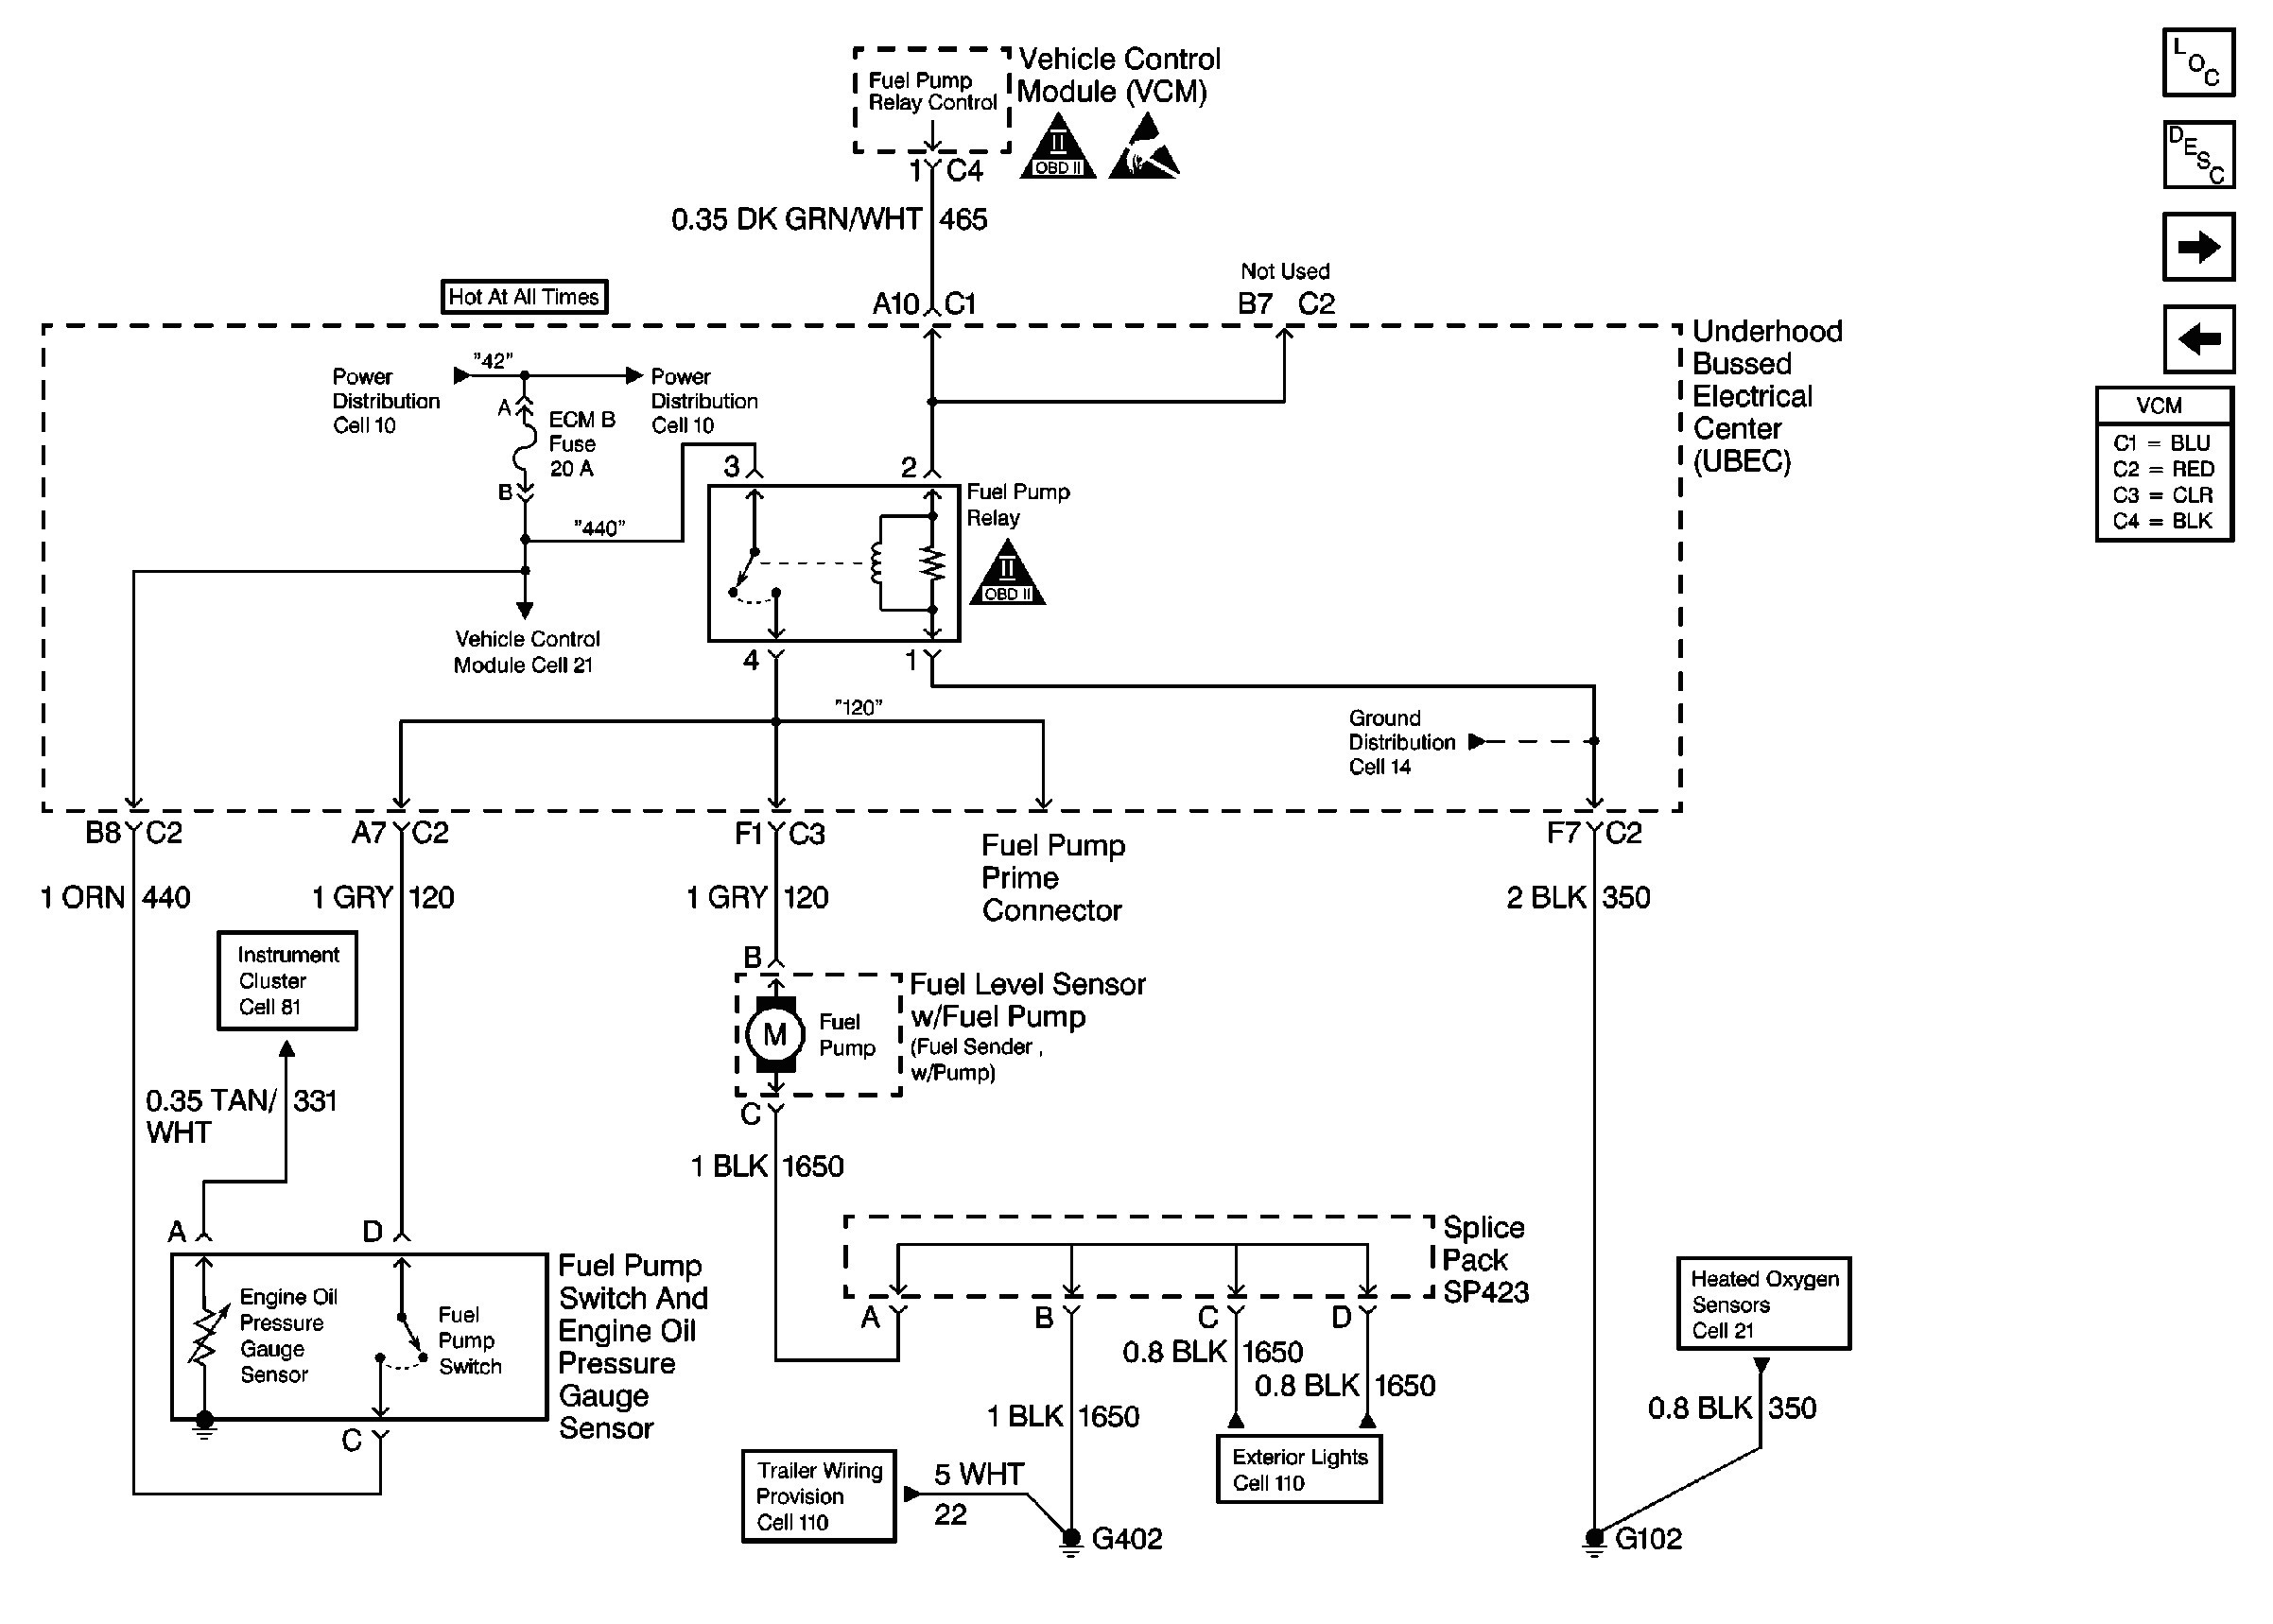 Wiring Diagram for An Electric Fuel Pump and Relay Awesome Fuel Pump Wiring Harness Diagram Diagram Of Wiring Diagram for An Electric Fuel Pump and Relay